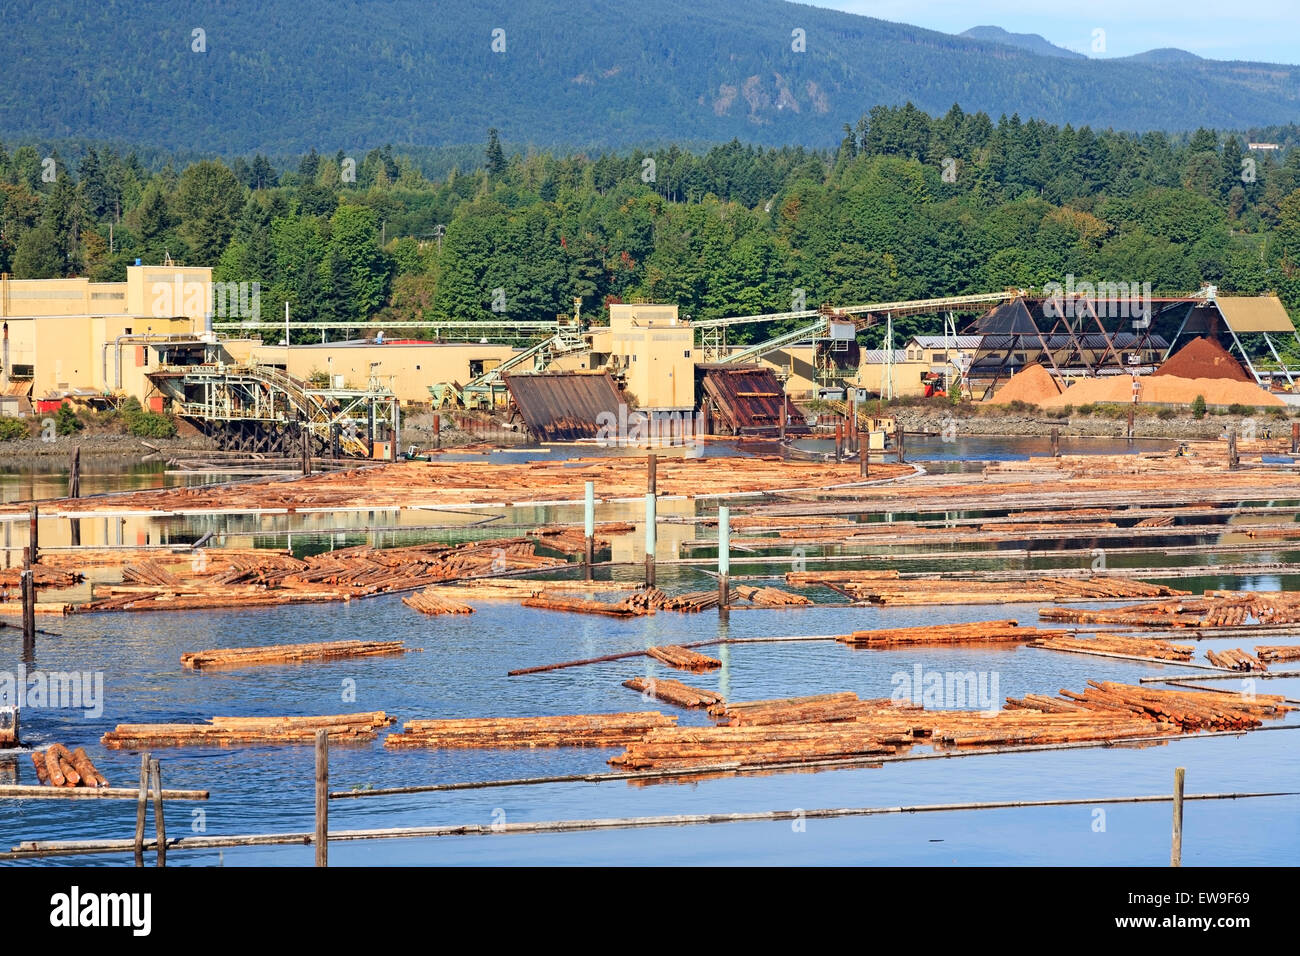 Western Forest products cedar sawmill, Chemainus, Vancouver Island, British Columbia - Stock Image